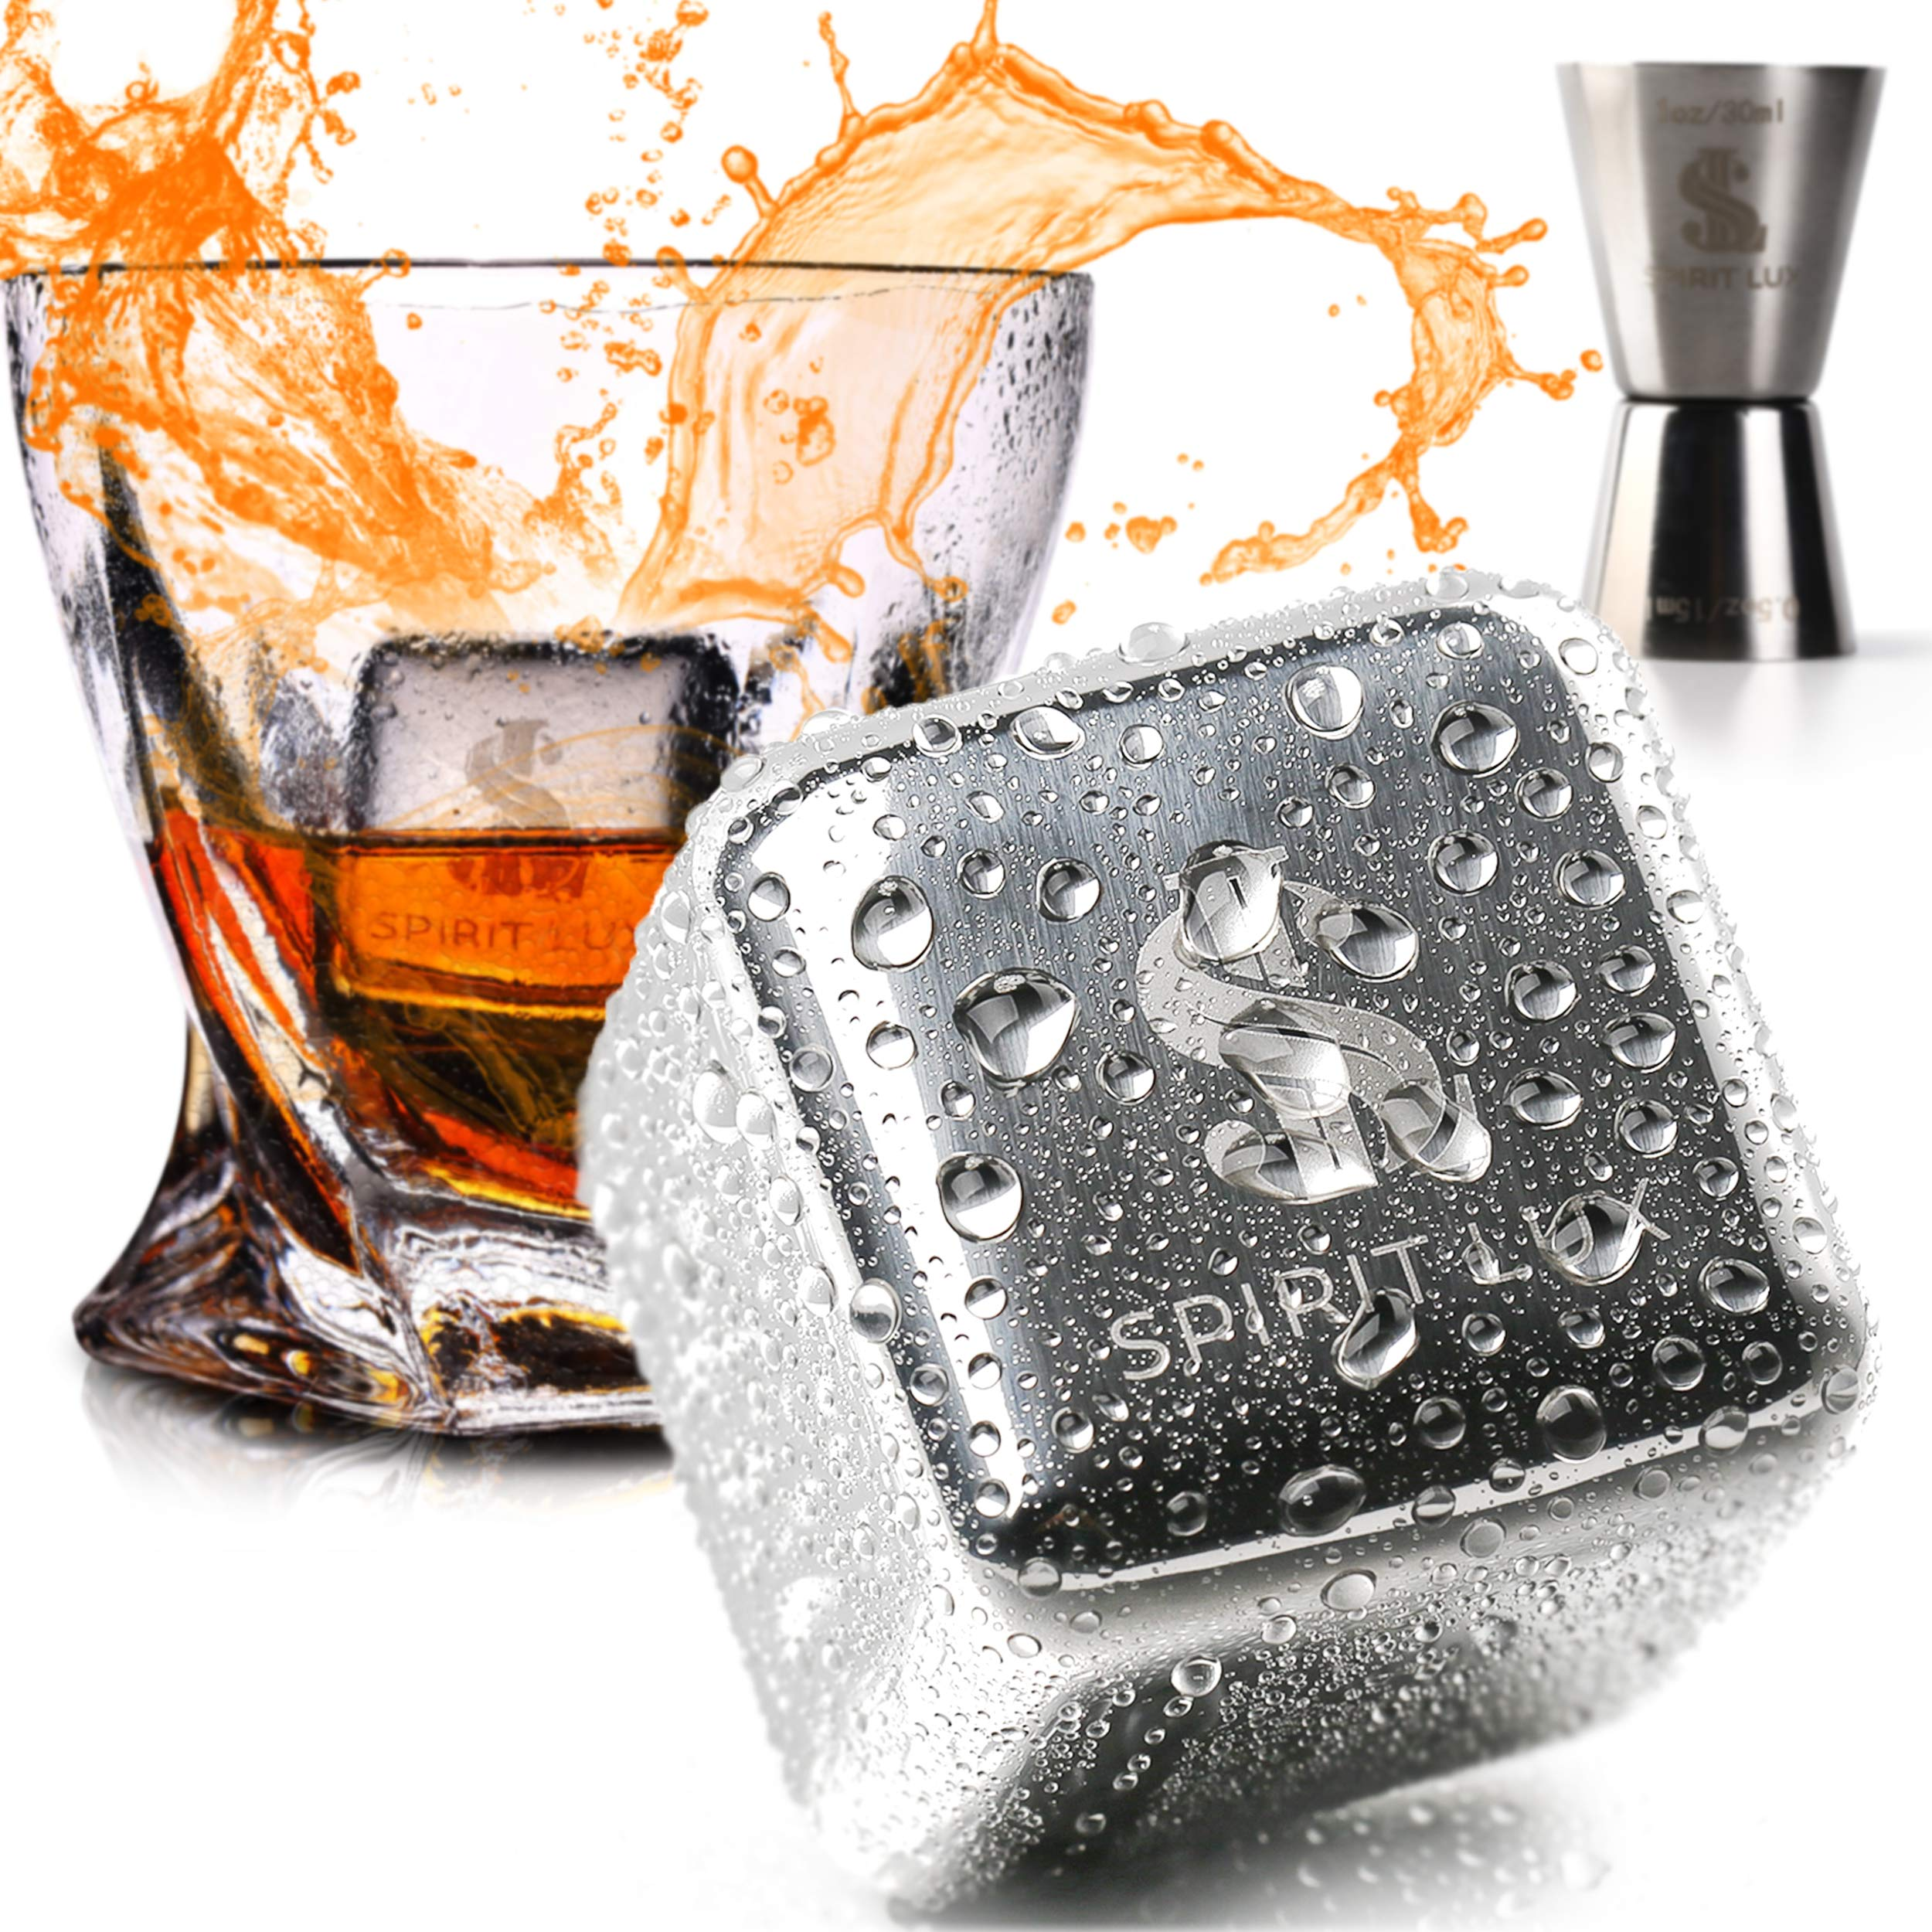 """King-Sized Premium Whiskey Stones Stainless Steel Gift Set-Bourbon, Scotch Reusable Metal Ice Cubes -Whiskey Rocks Chilling Stones 1.5"""" extra large + Cork Coasters for drink by Spirit Lux"""